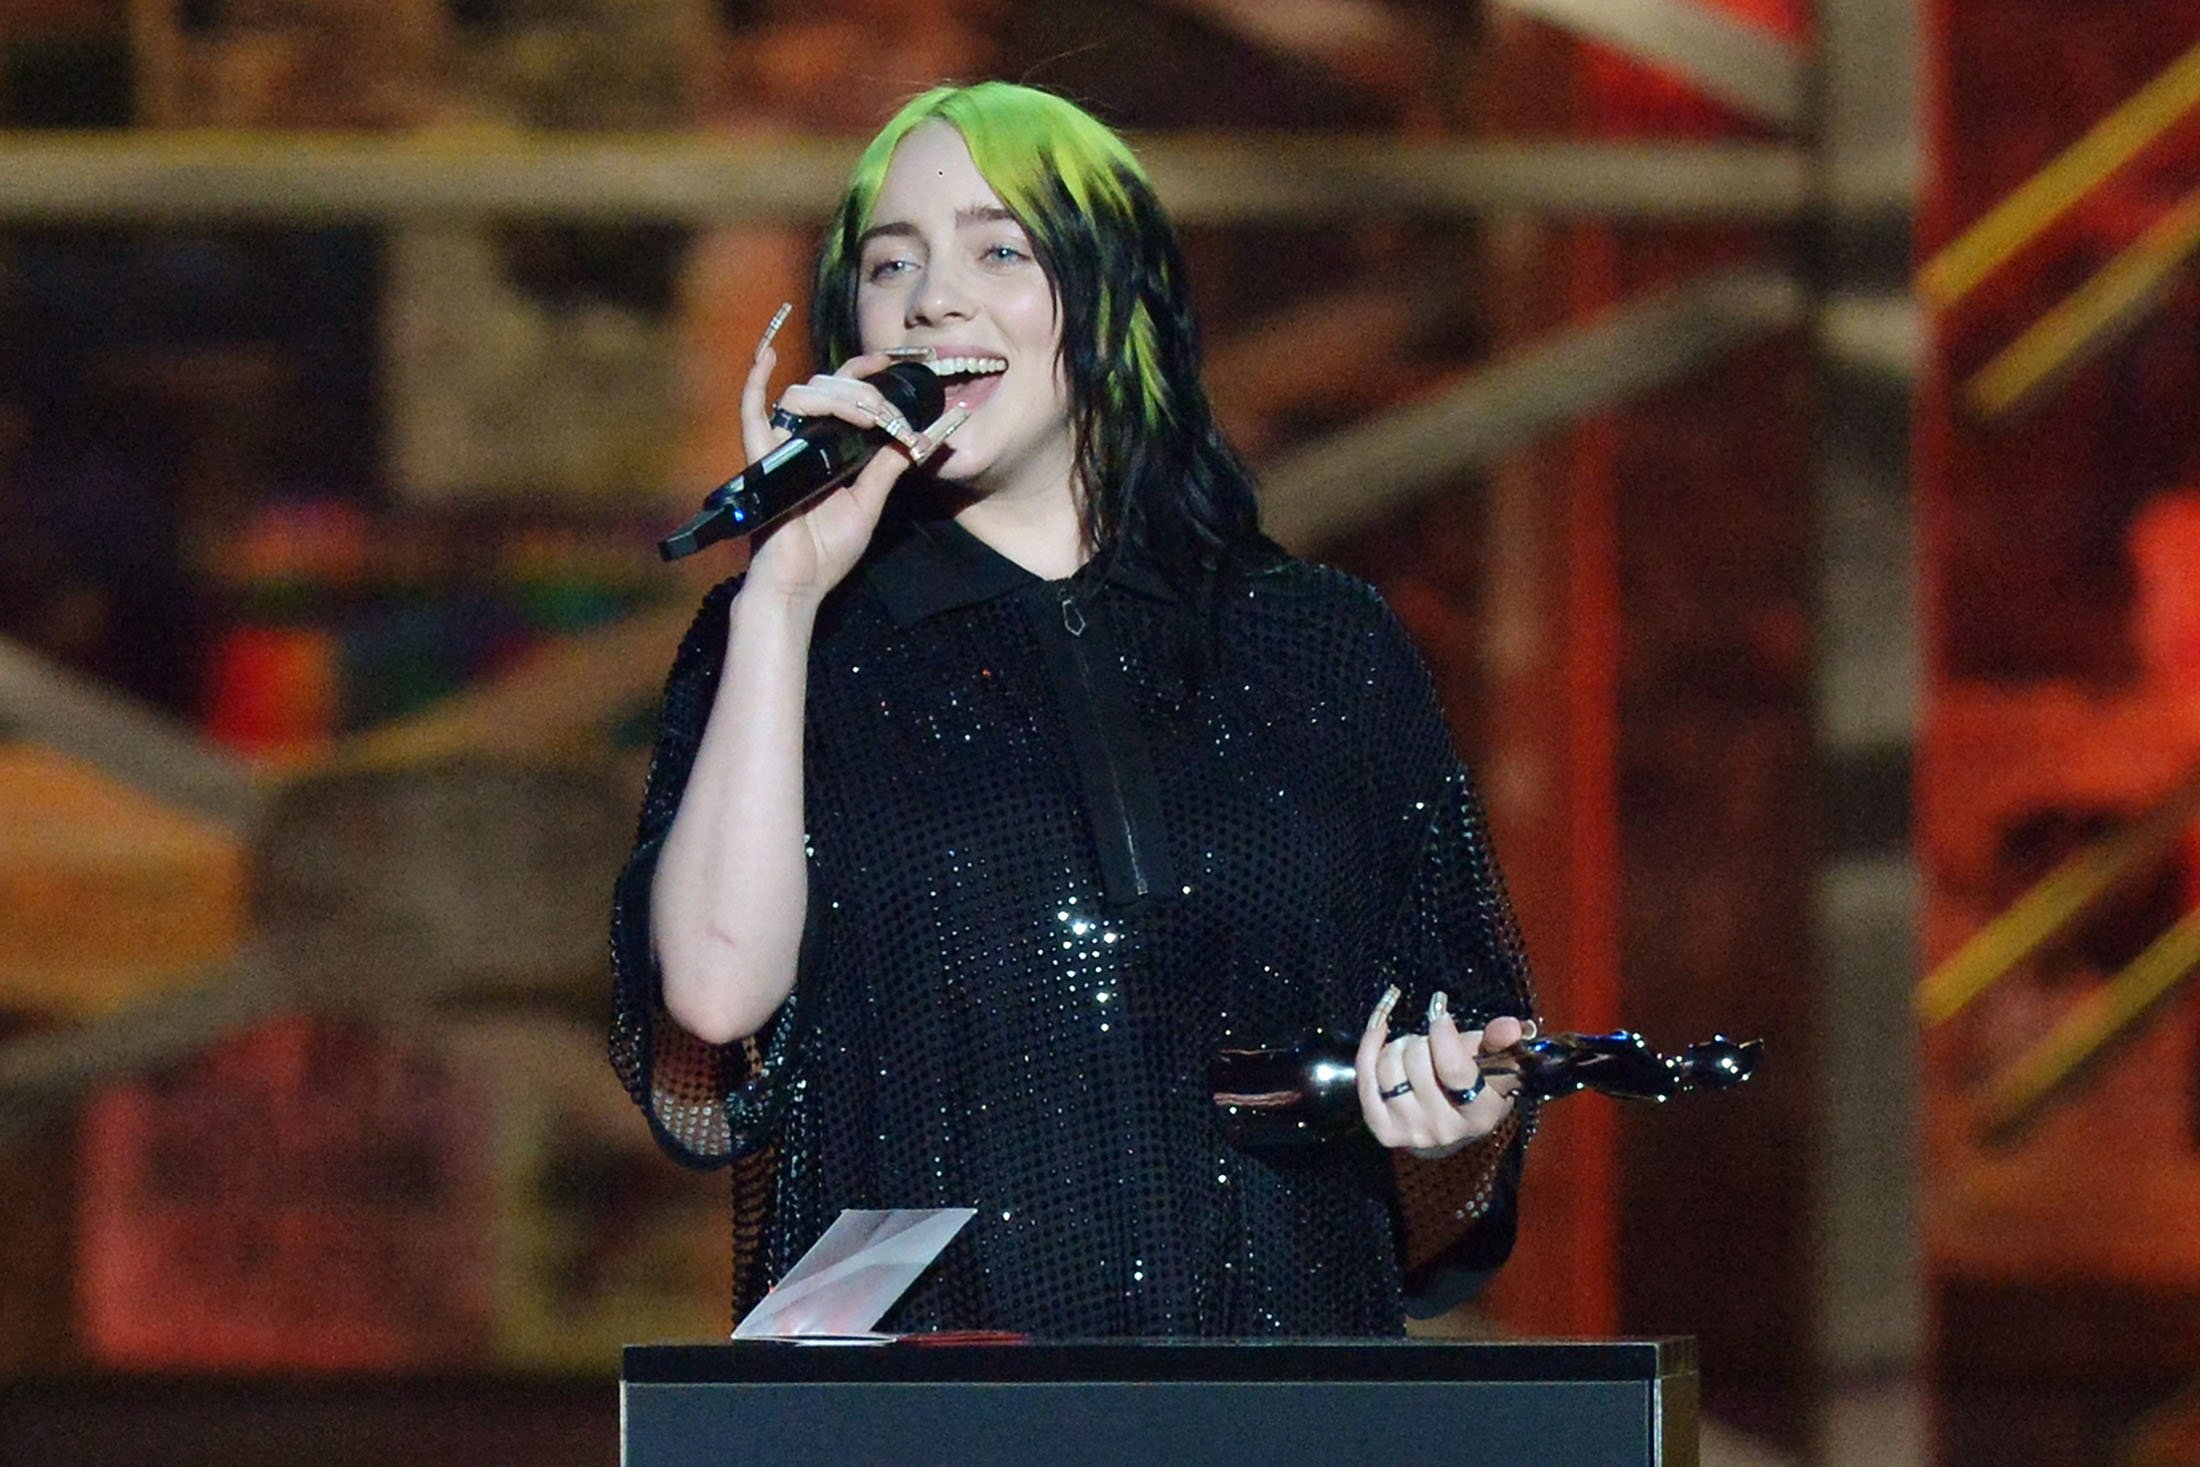 Billie Eilish accepts the International Female Solo Artist award during The BRIT Awards 2020 at the O2 Arena in London, England, Feb. 18, 2020. (Getty Images)